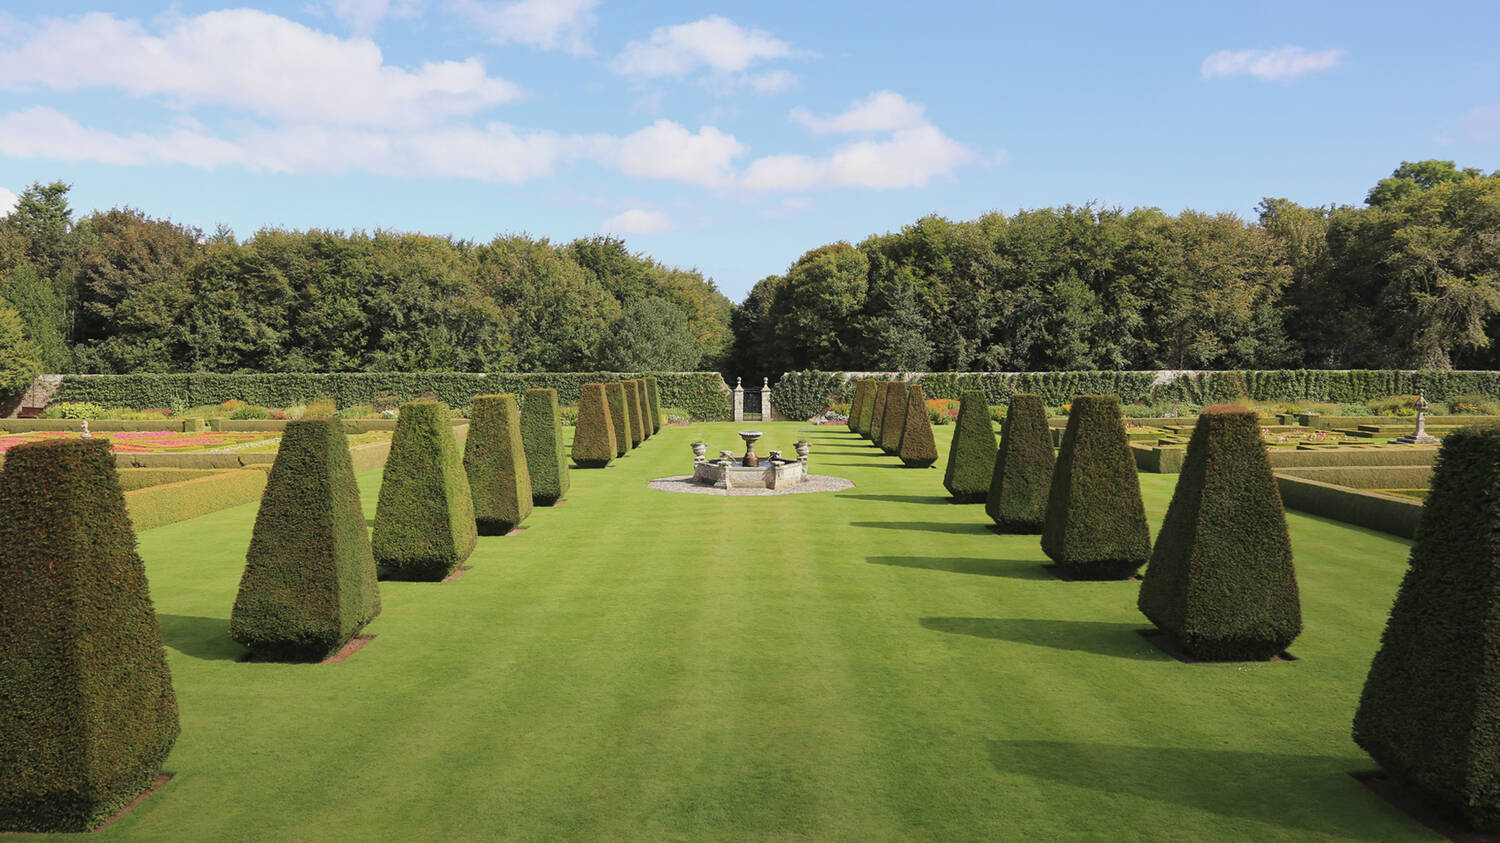 A view of an avenue of clipped yew trees on either side of a manicured lawn. A stone fountain stands at the centre. Woodland can be seen in the distance.